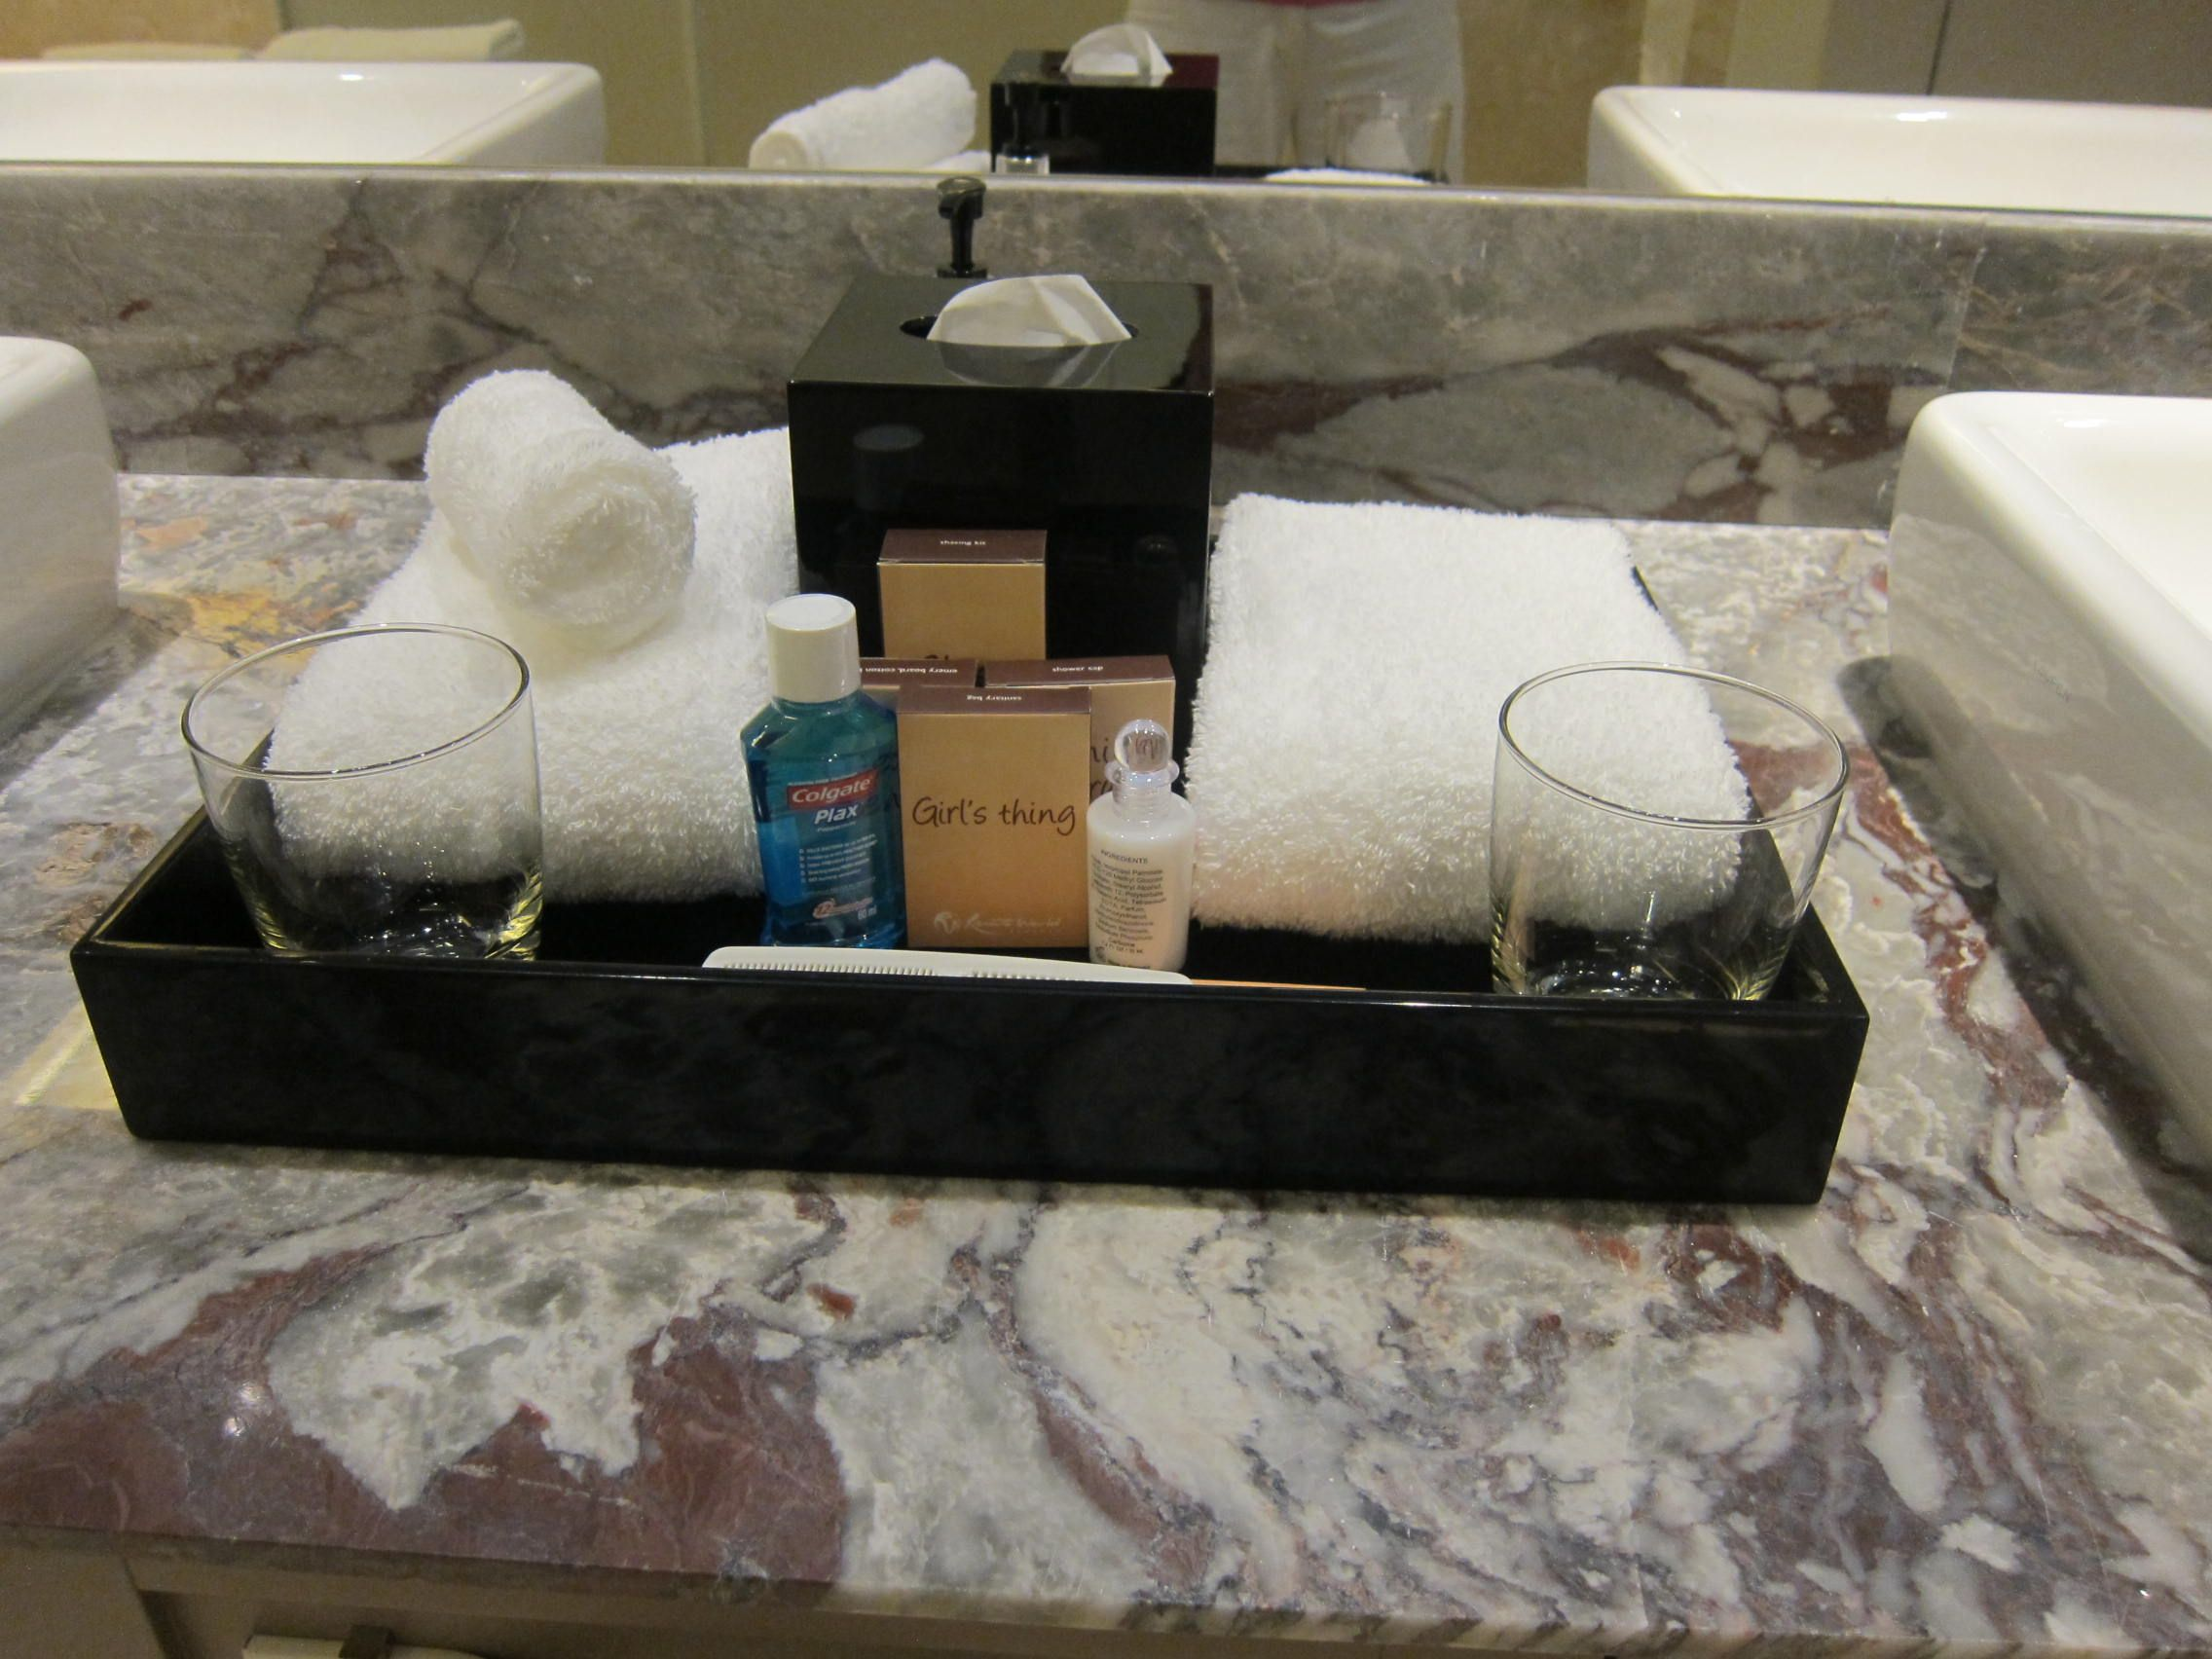 Bathroom Amenities kimpton eventi hotel's bath products | hotel amenities | pinterest